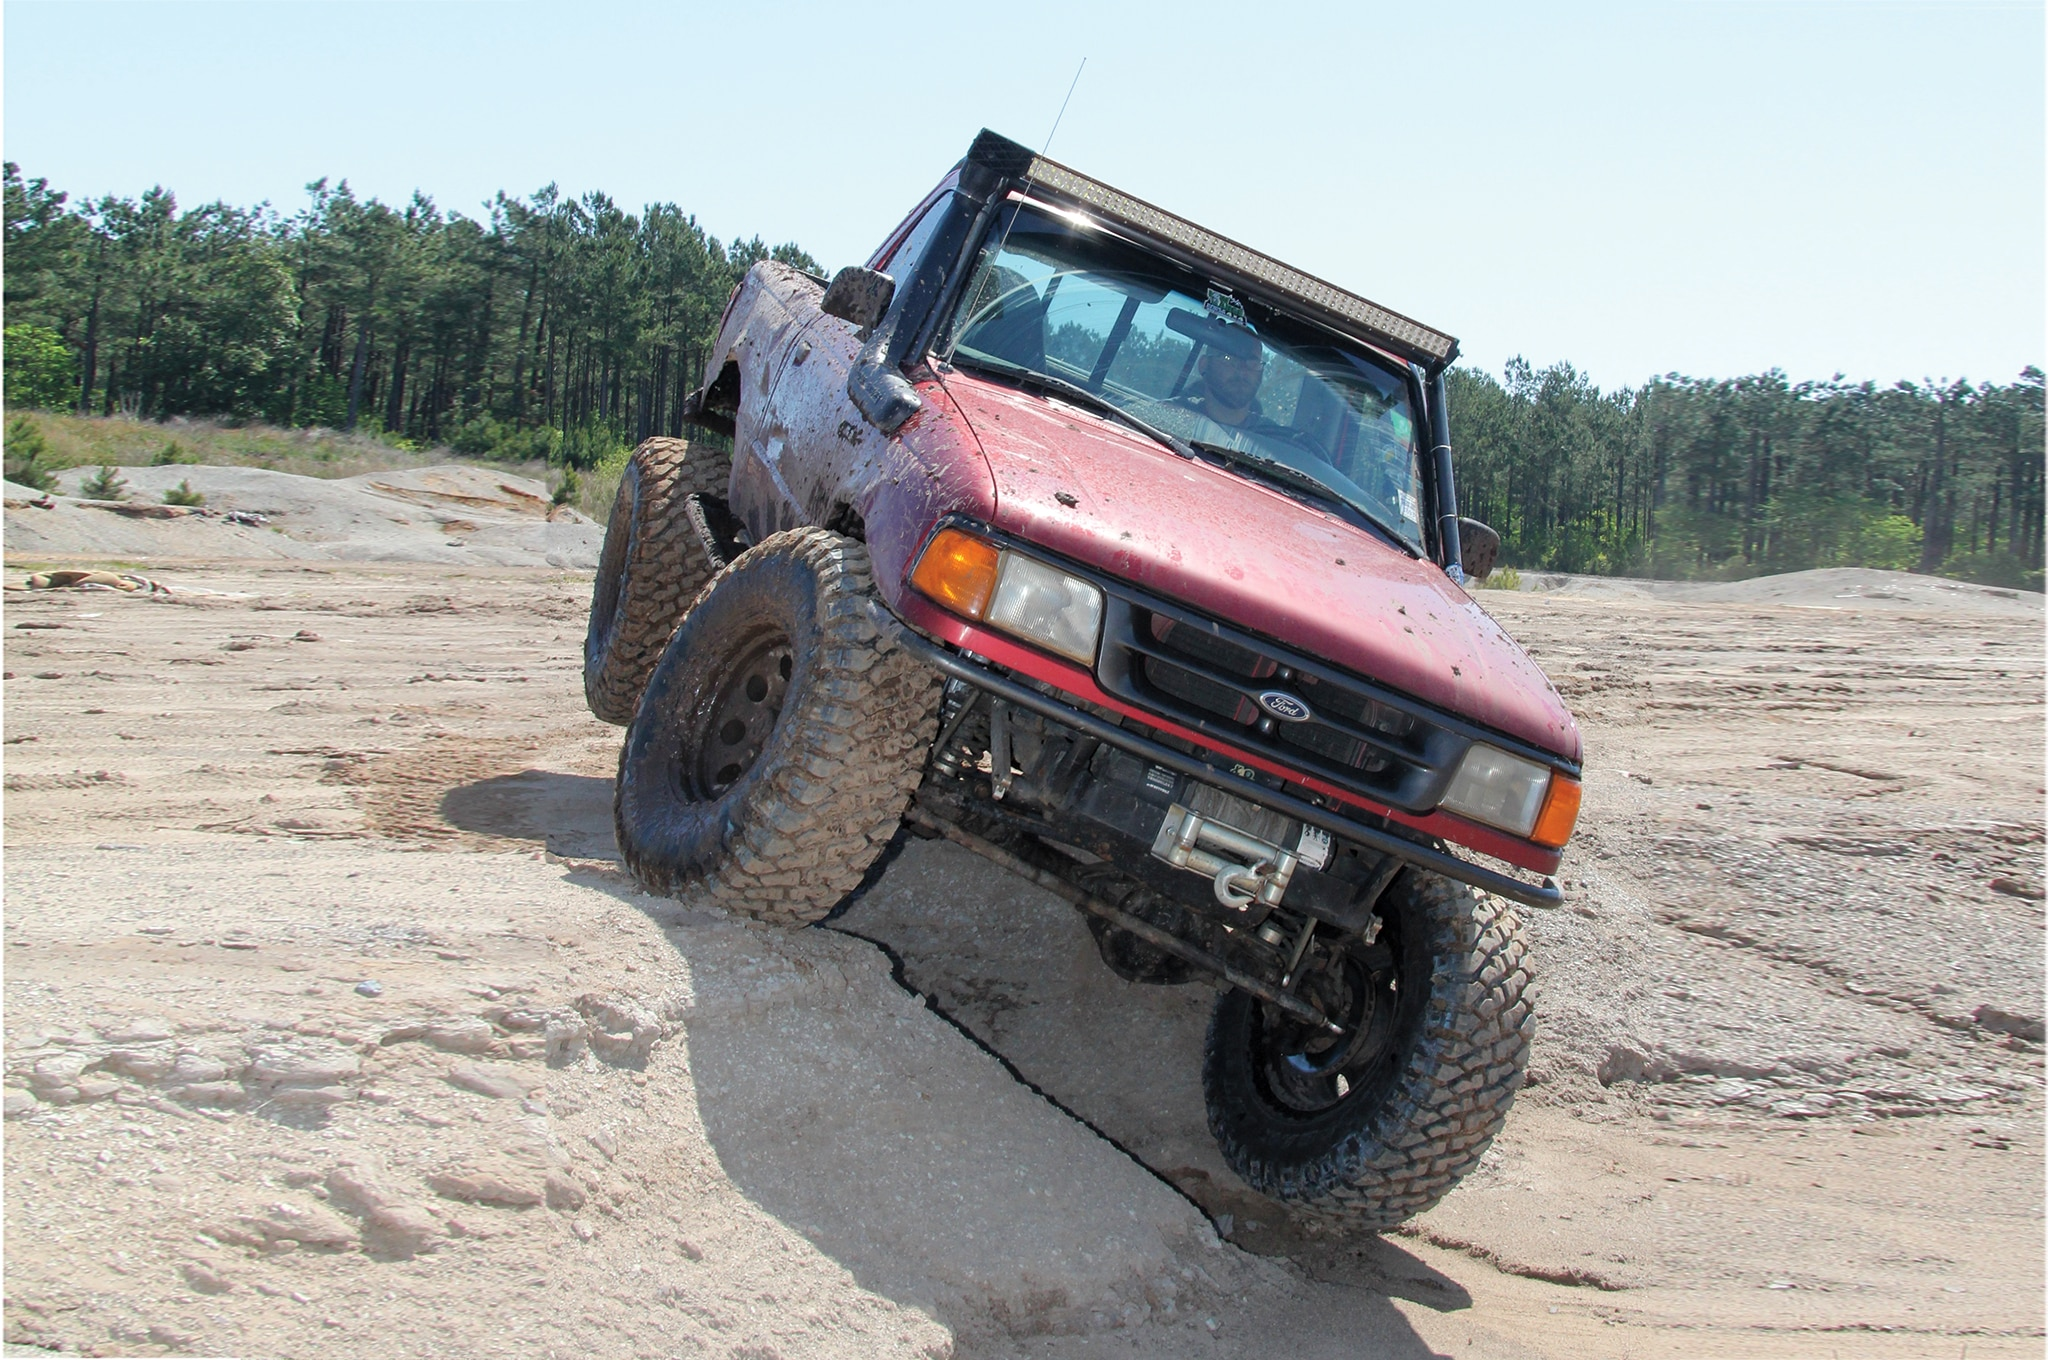 Strategically placed sipings and tread blocks provide bite in wet conditions. The load range D 3-ply sidewall on our prototypes list a max capacity of 3,525 pounds, which is slightly overkill for a lightweight pickup or SUV, but equates to an ultra-thick compound that is less susceptible to damage off-road.